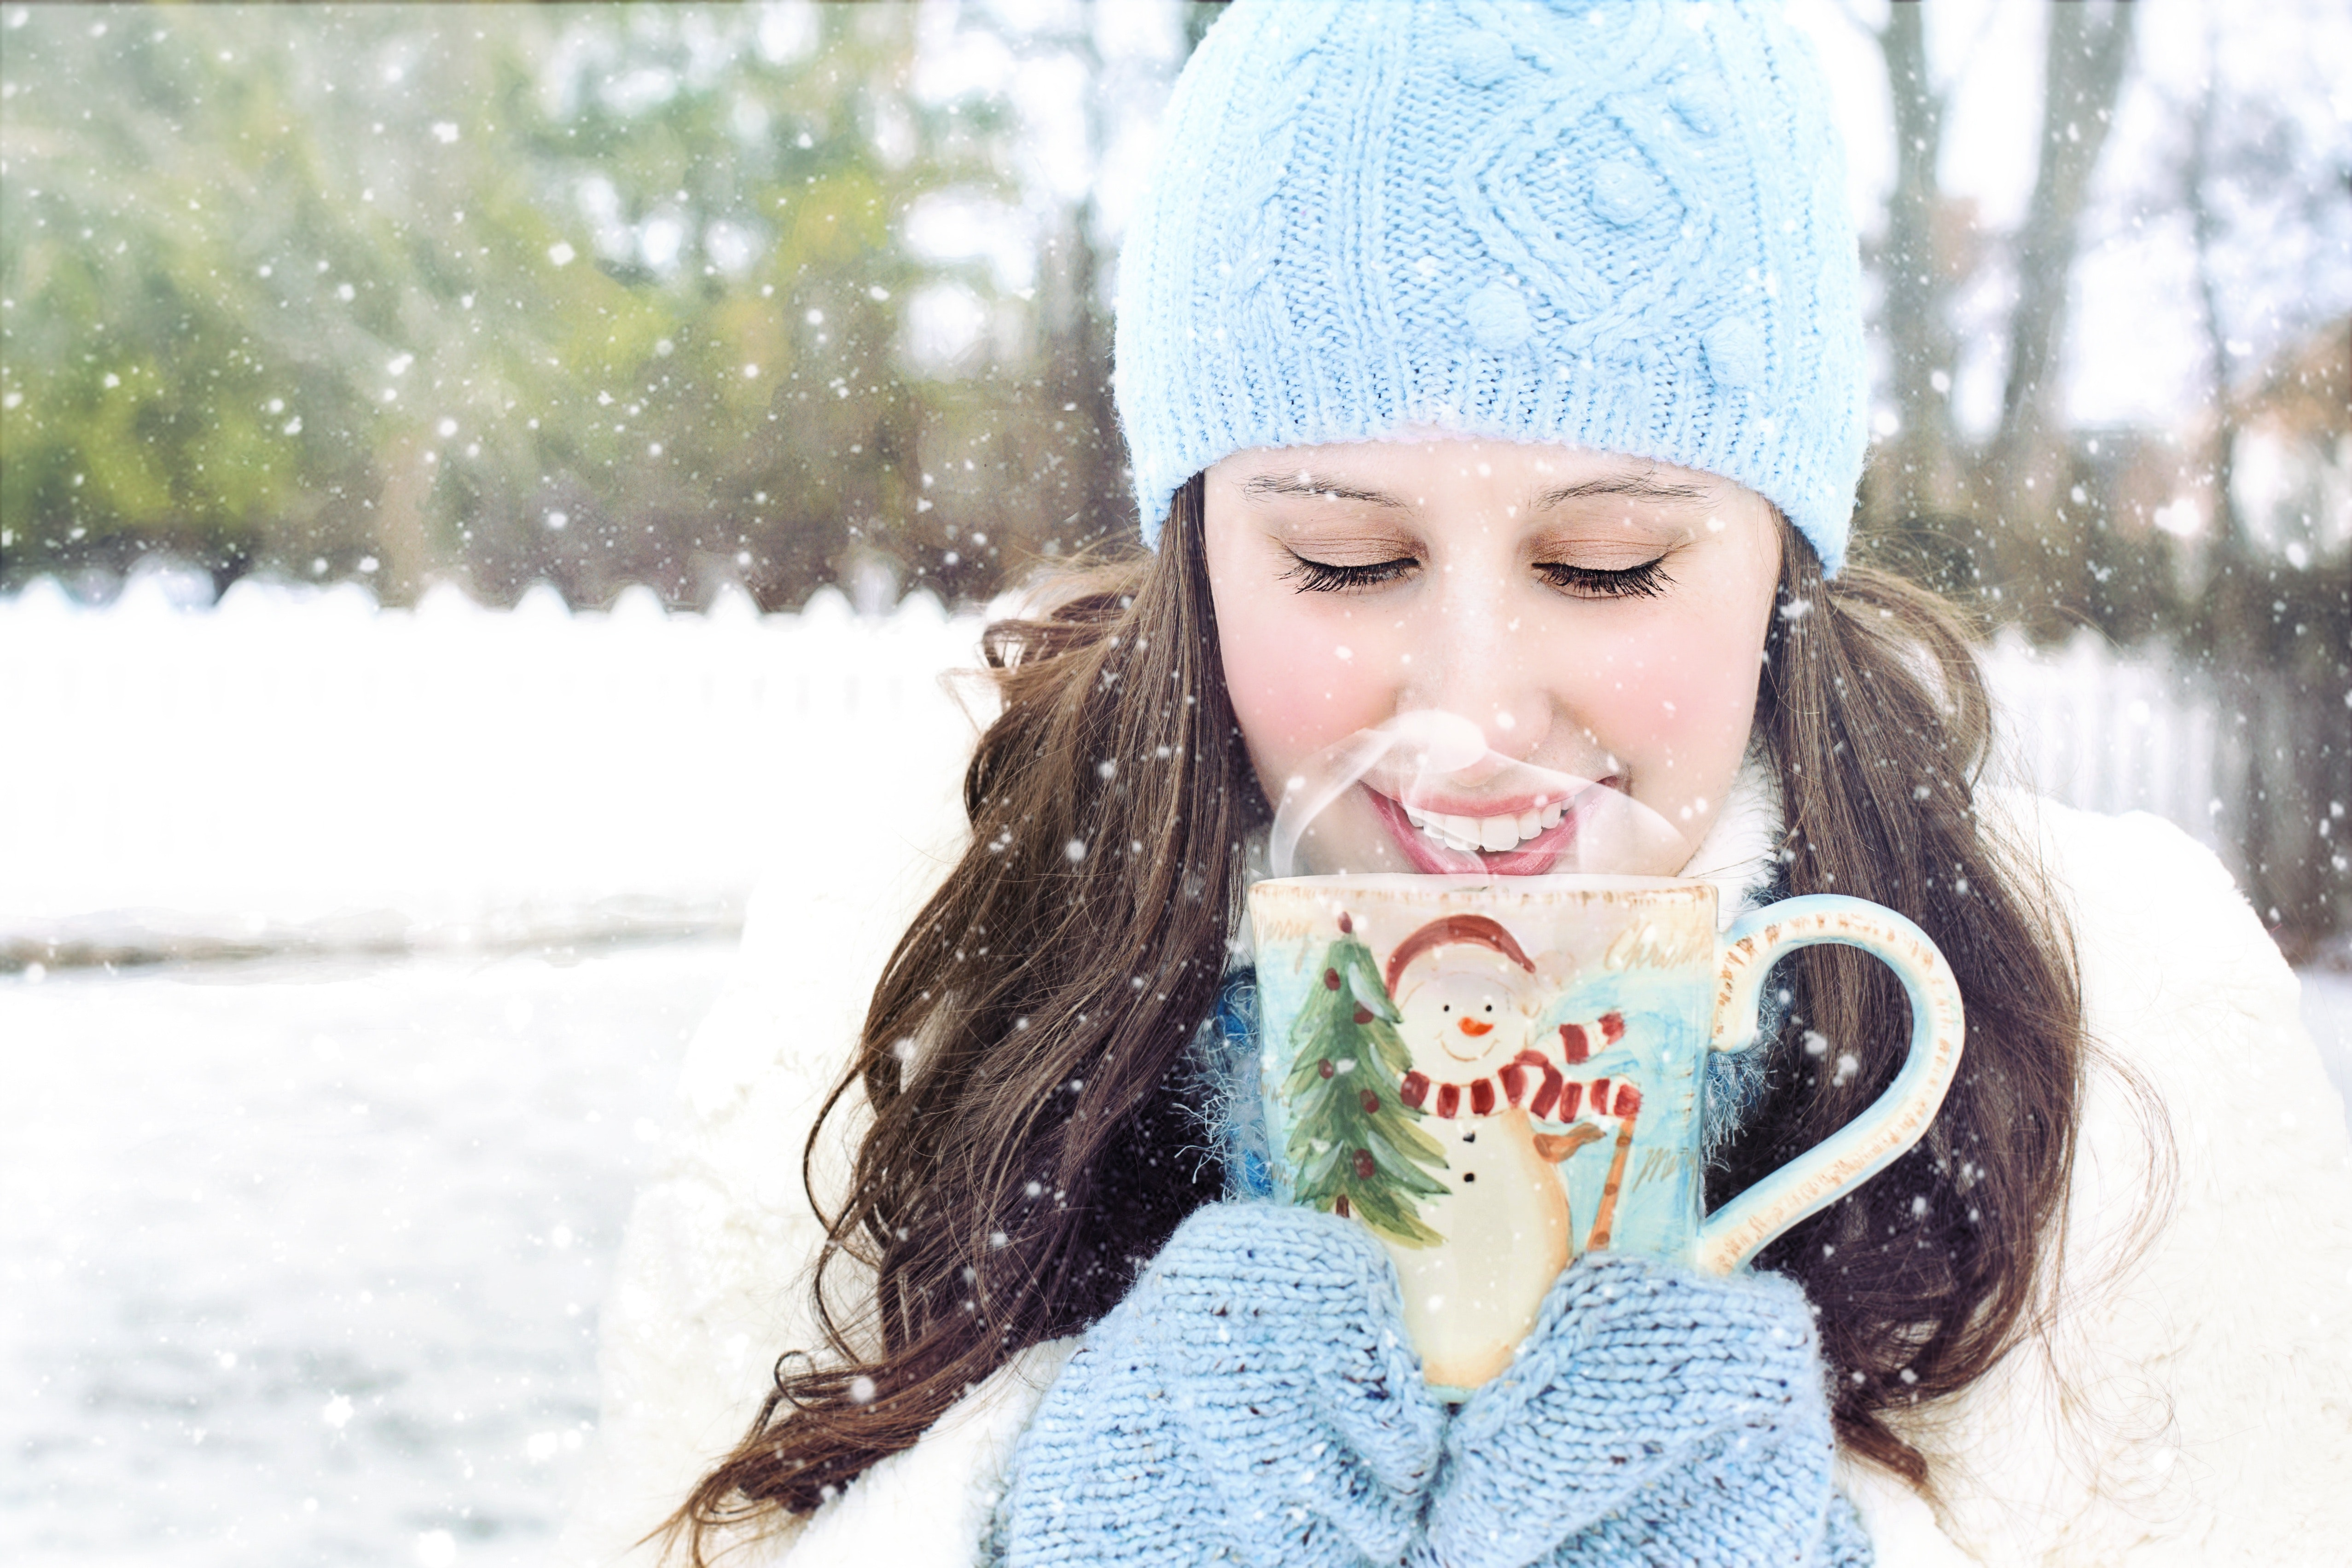 Young woman in snow photo